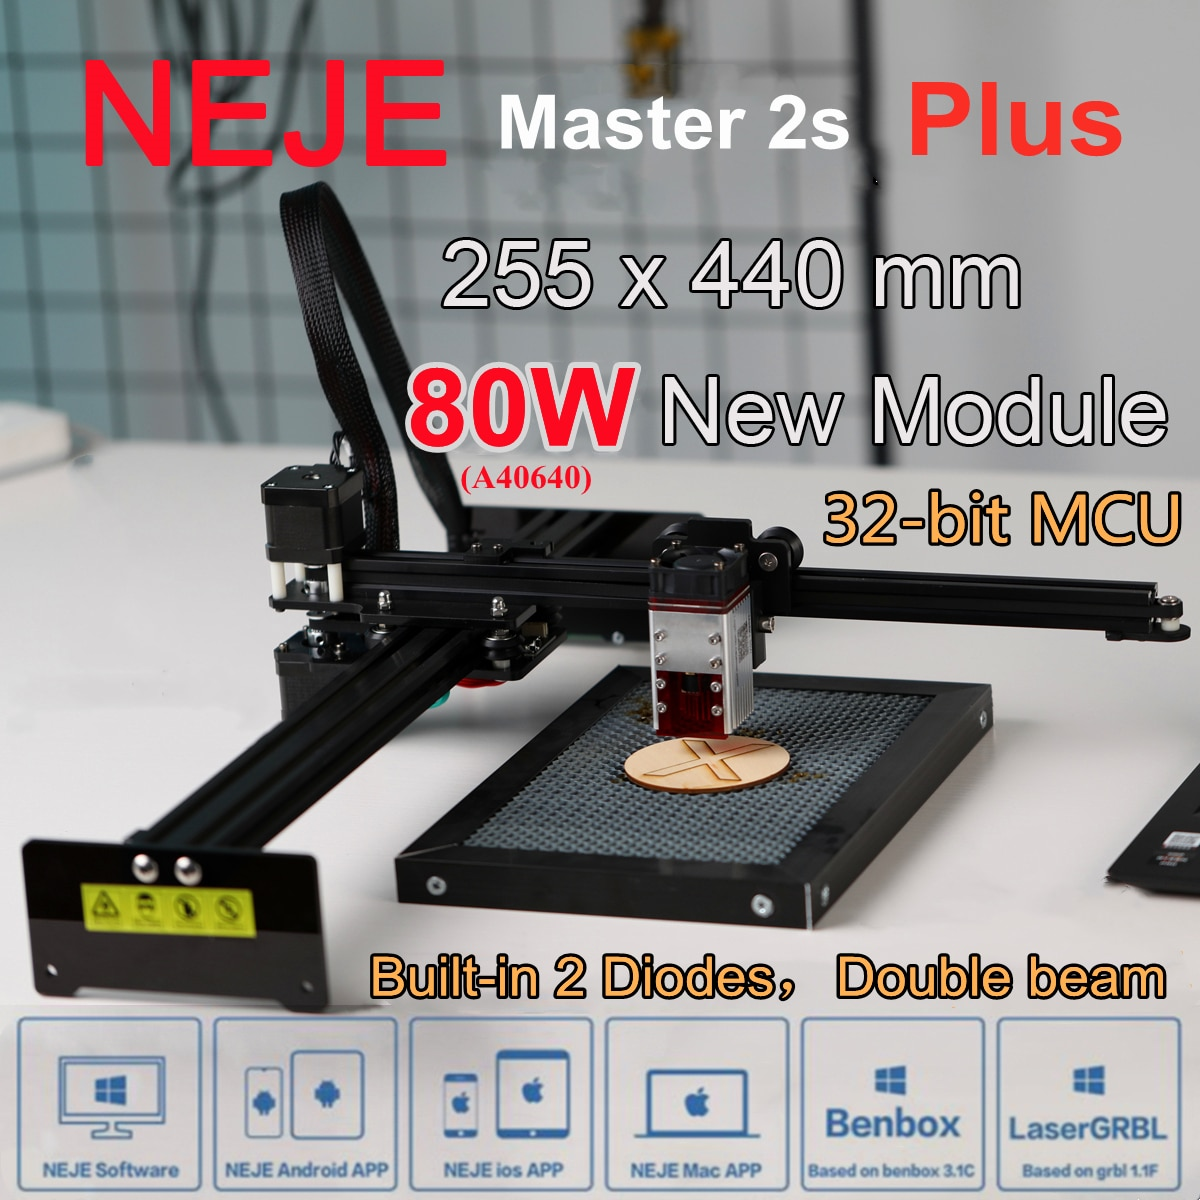 NEJE 80W Laser Engraving Cutting Machine Wood Engraver Cutter CNC Router with 2 Diodes LaserGRBL,Lightburn,Bluetooth-APP Control neje master 2s max 80w cnc double beam laser engraver cutter engraving cutting machine bluetooth lasergrbl lightburn 460x810mm